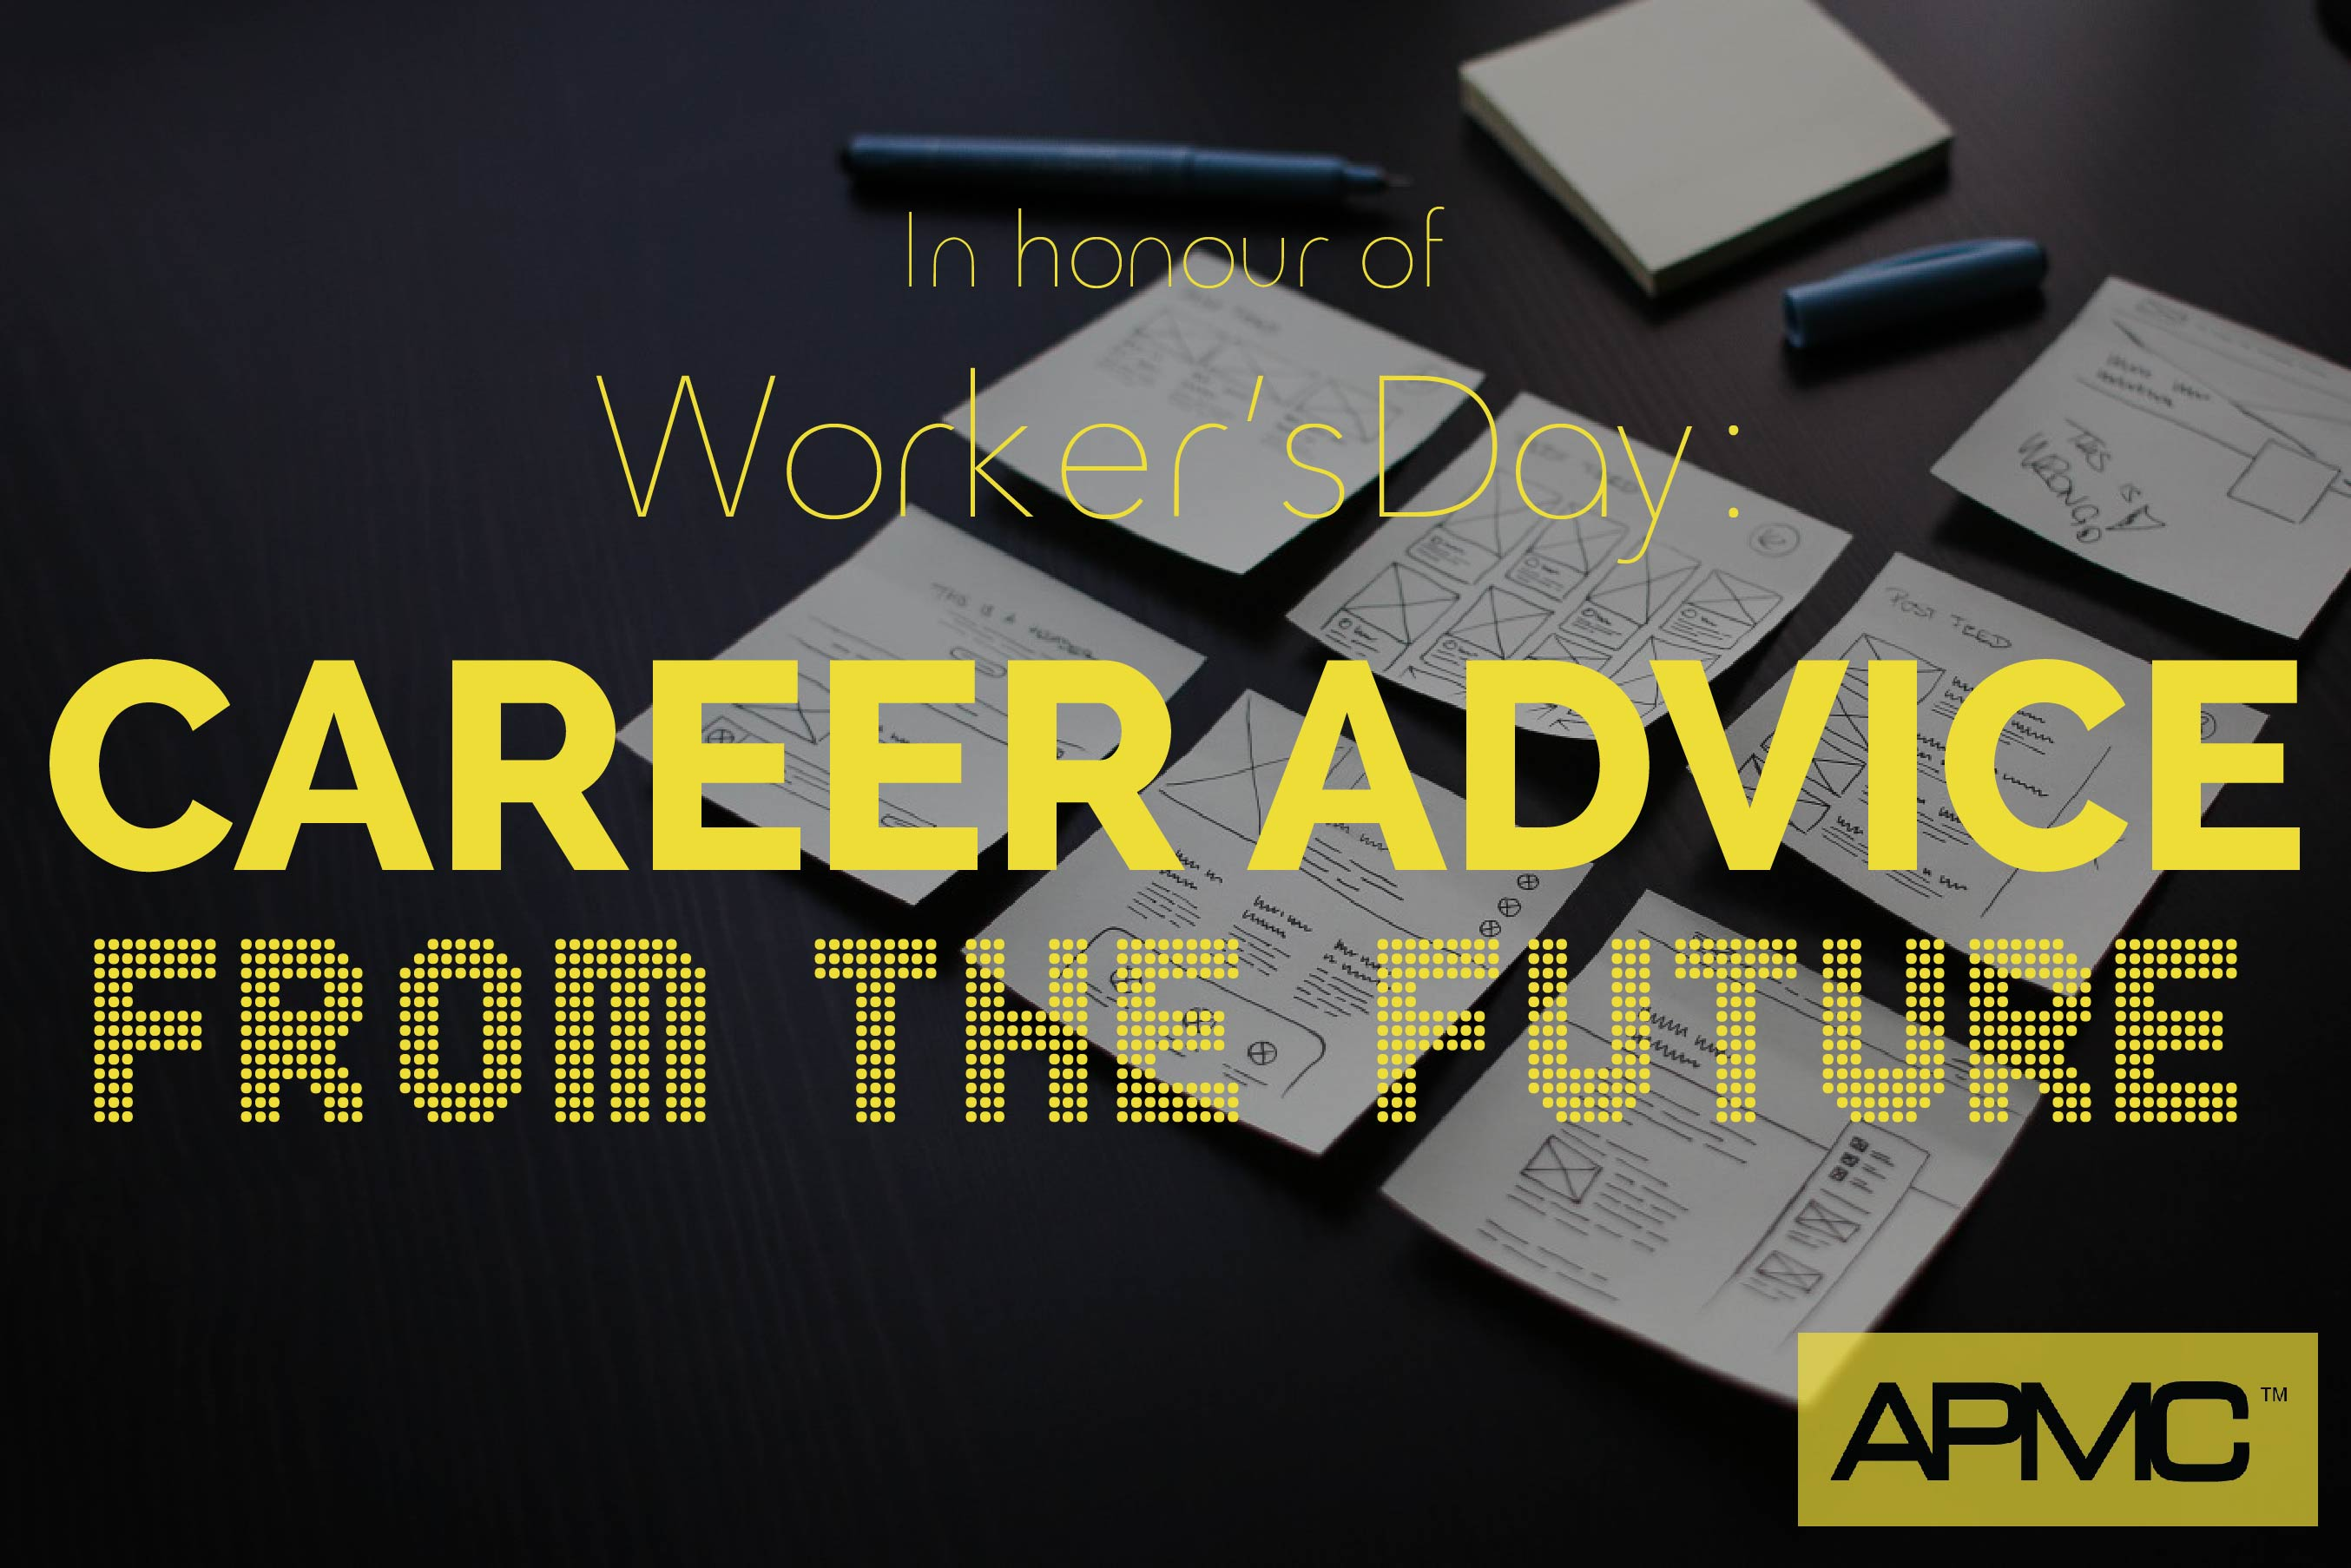 In honour of Worker's Day: CAREER ADVICE from the Future